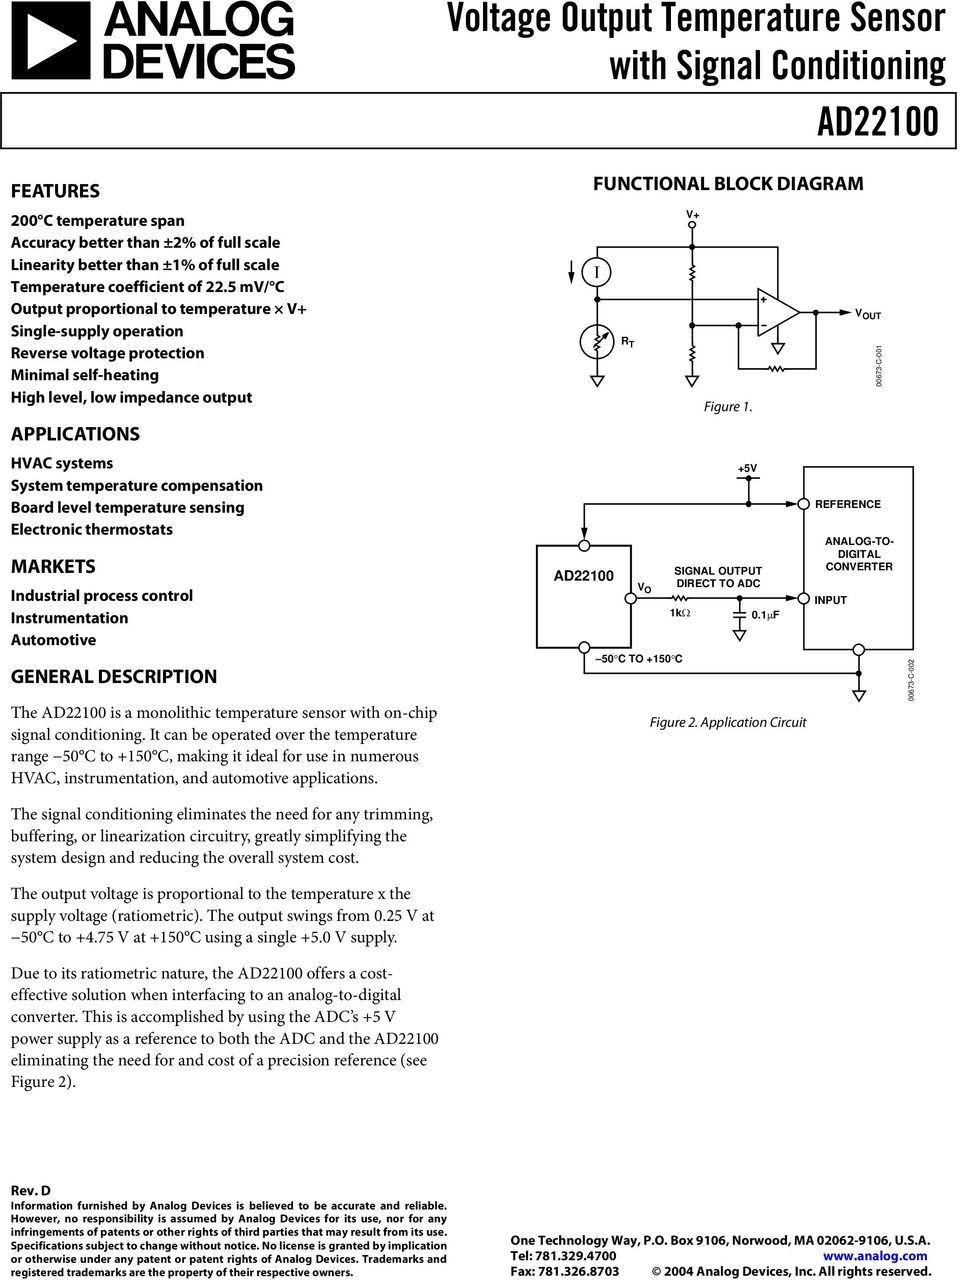 Voltage Output Temperature Sensor With Signal Conditioning Ad Pdf Sensing And Control 5 Mv C Proportional To V Single Supply Operation Reverse Protection